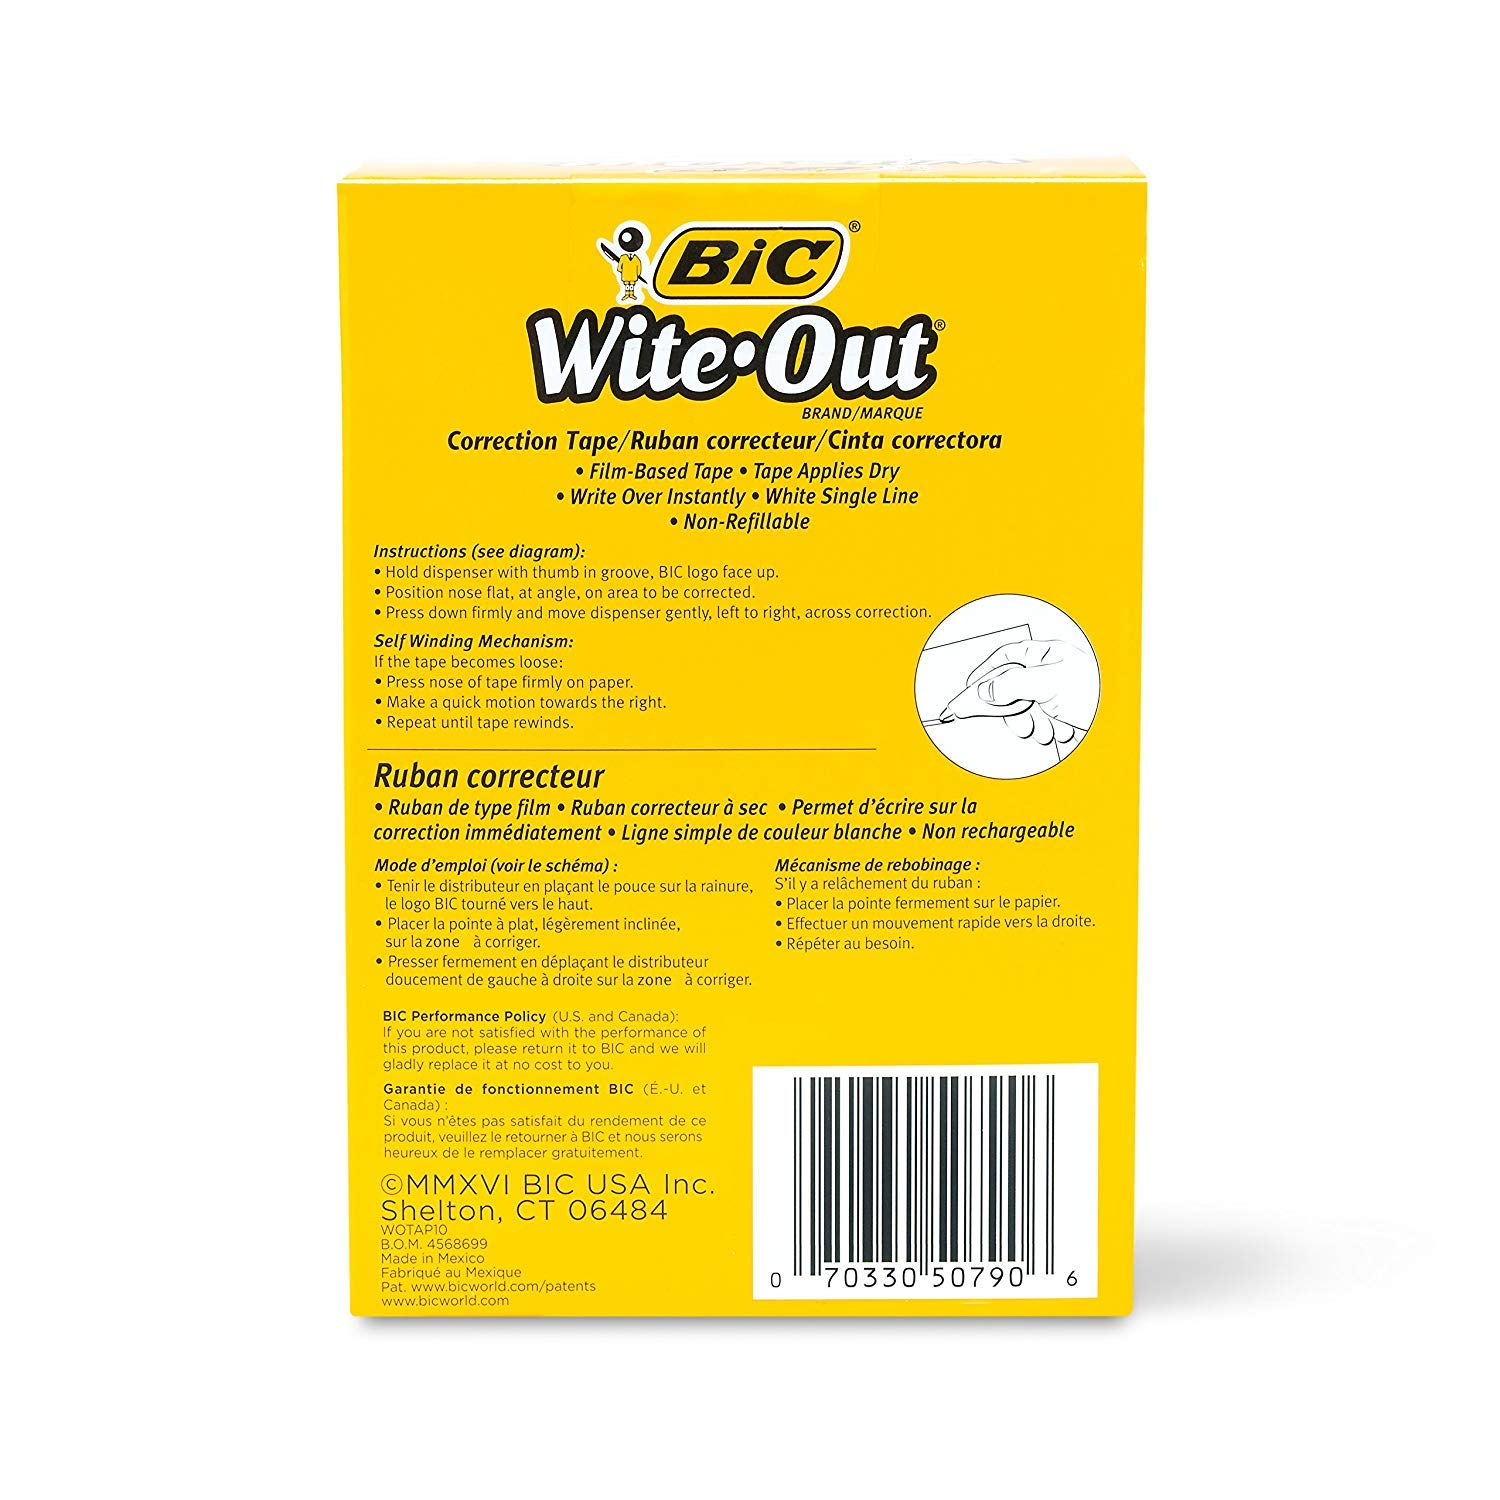 BIC Wite-Out Brand EZ Correct Correction Tape, White, 38-Count (38) by BIC (Image #4)